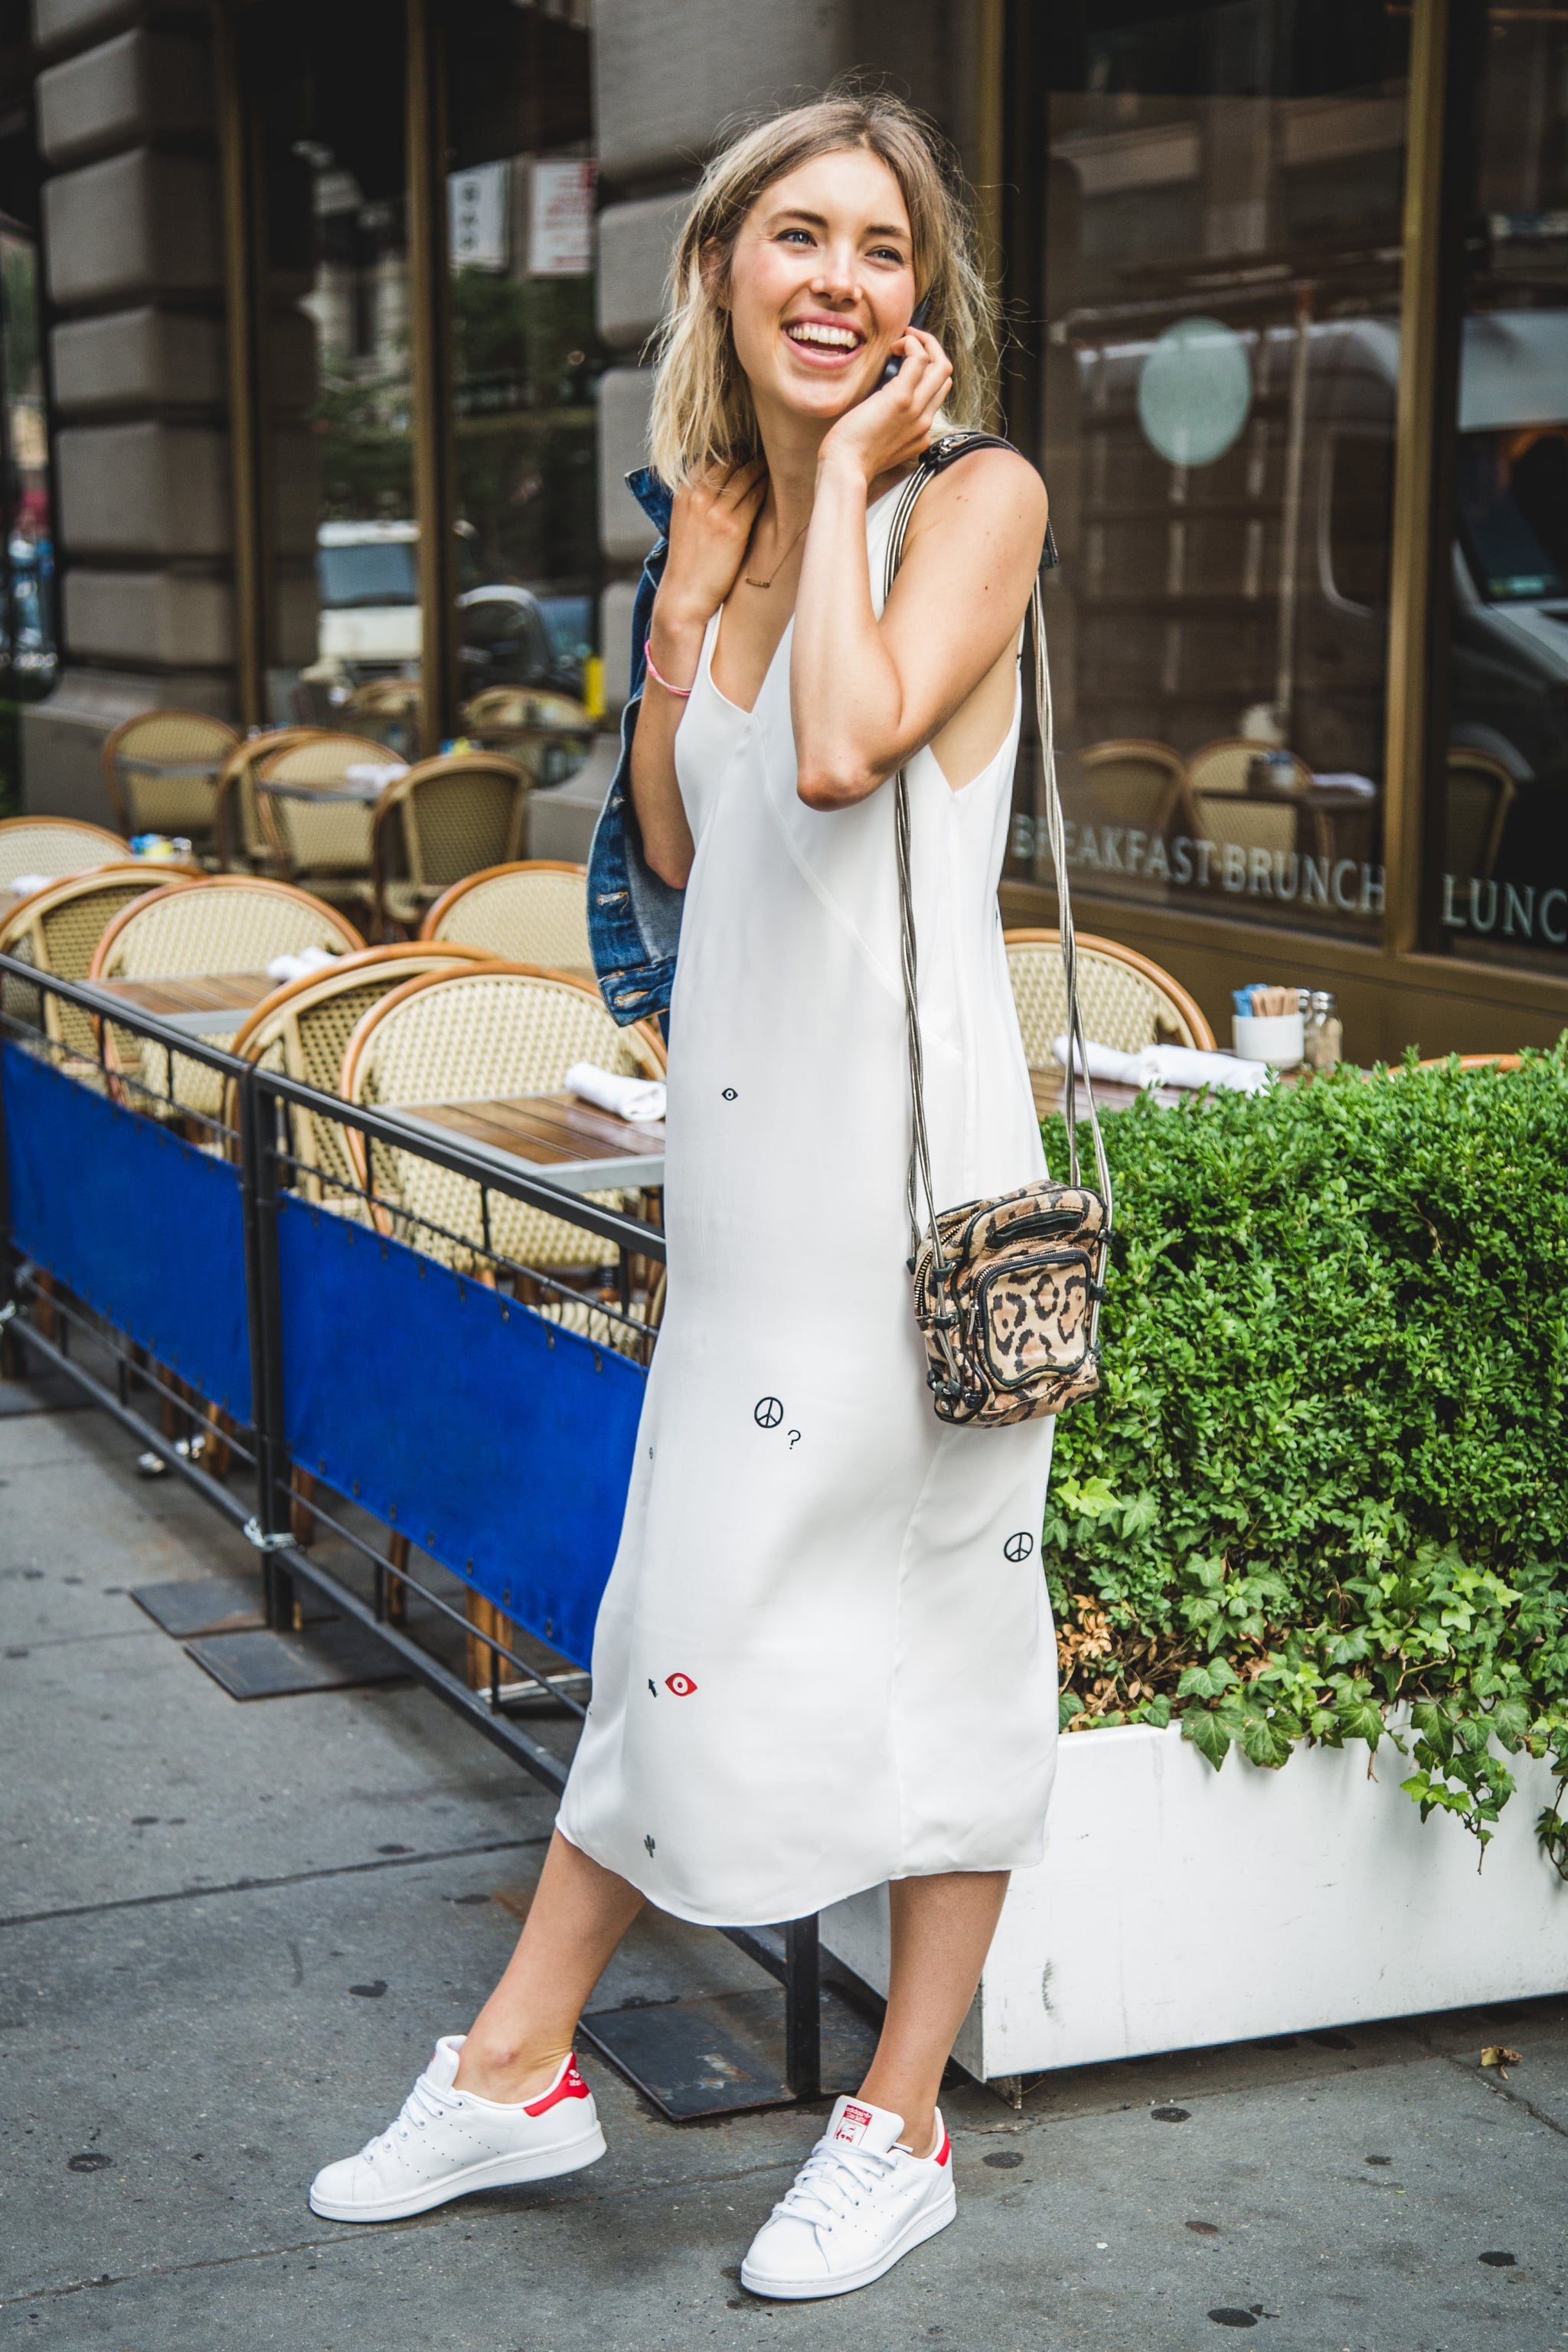 How to Wear a Dress and Sneakers